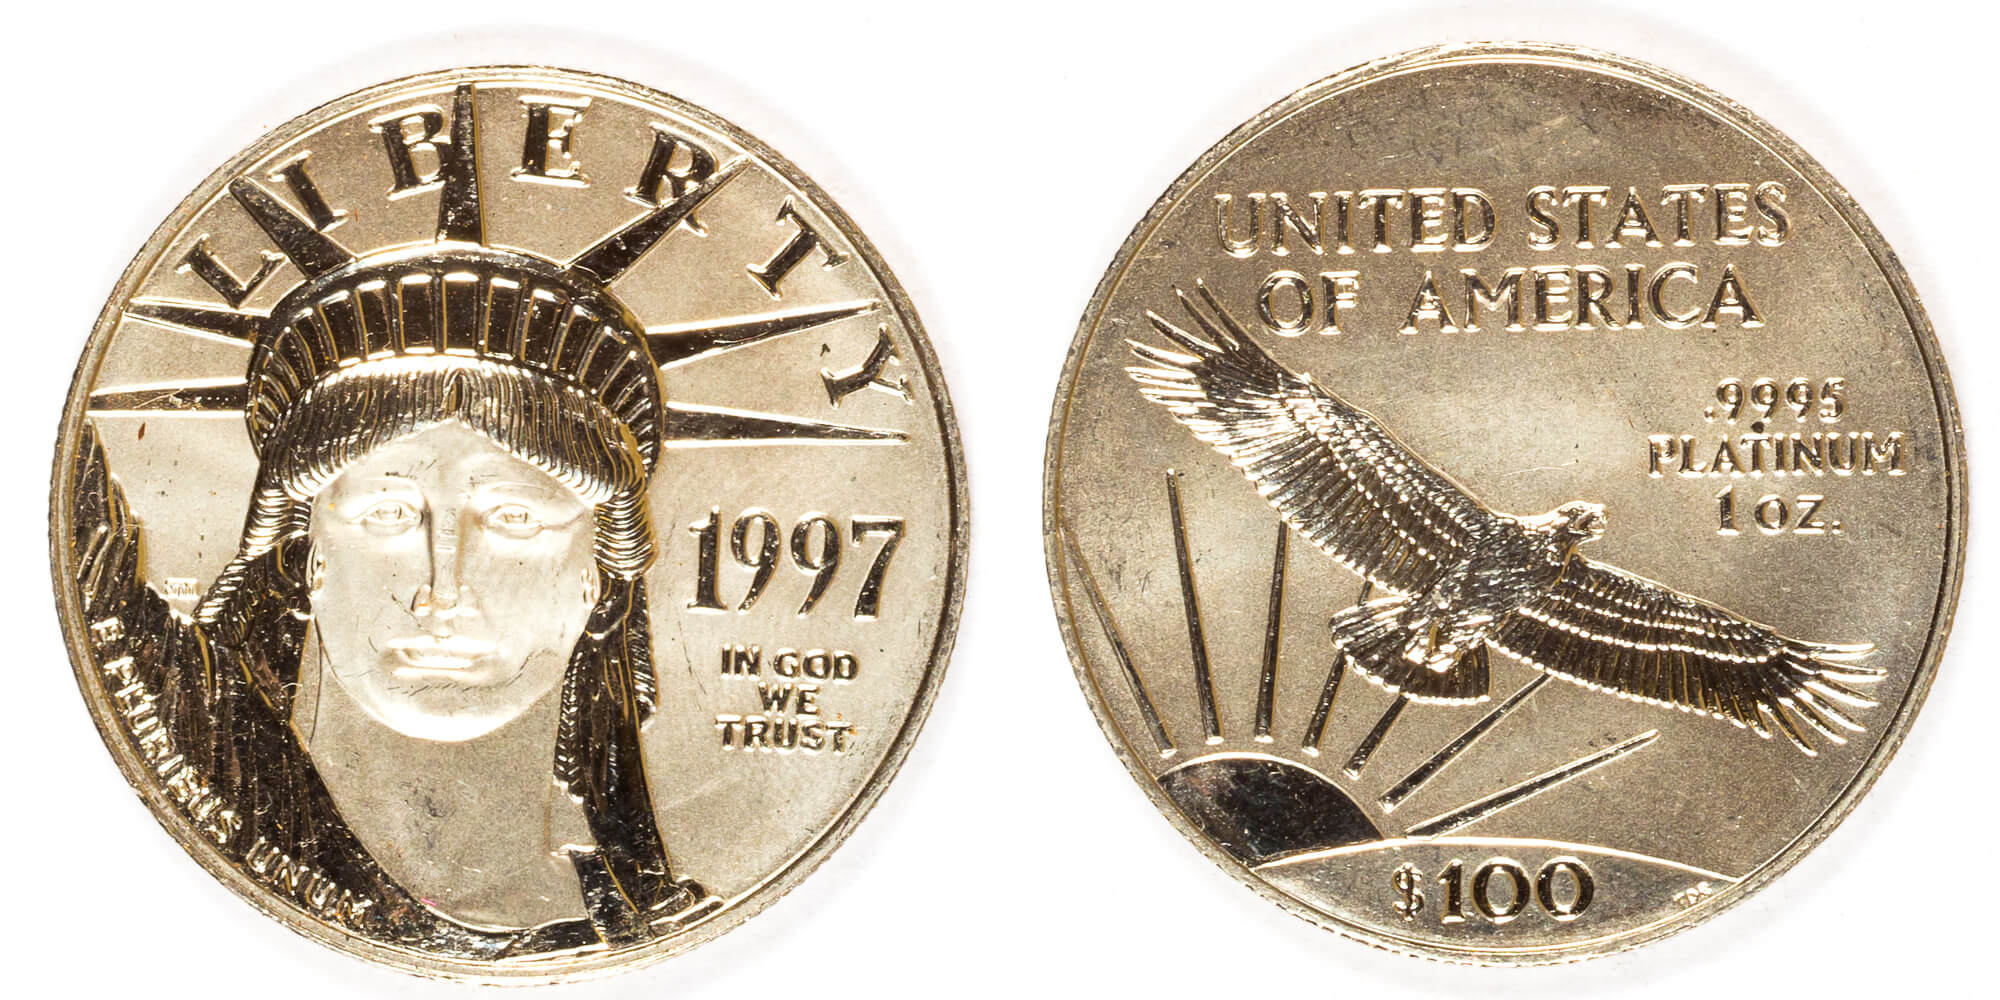 Where to find Eagle Coins West Palm Beach?